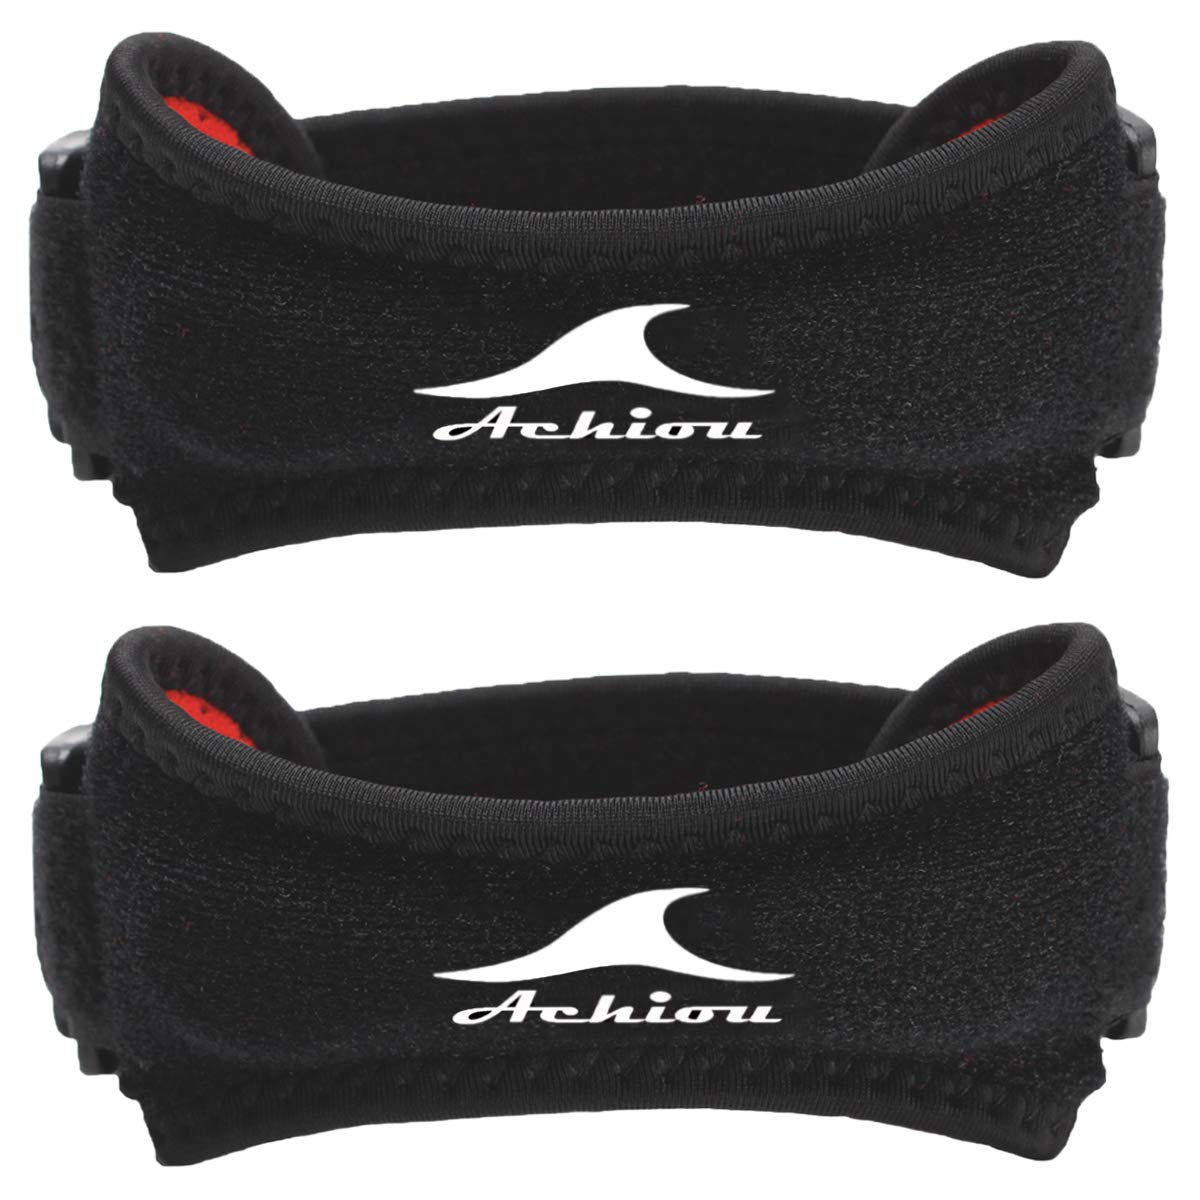 Achiou 2 Pack Patella Knee Strap for Protect Patellar Tendon Unique Silicone Support Adjustable Band for Pain Relief,Tendonitism,Running,Hiking,Weightlifting,Basketball,Volleyball,Black